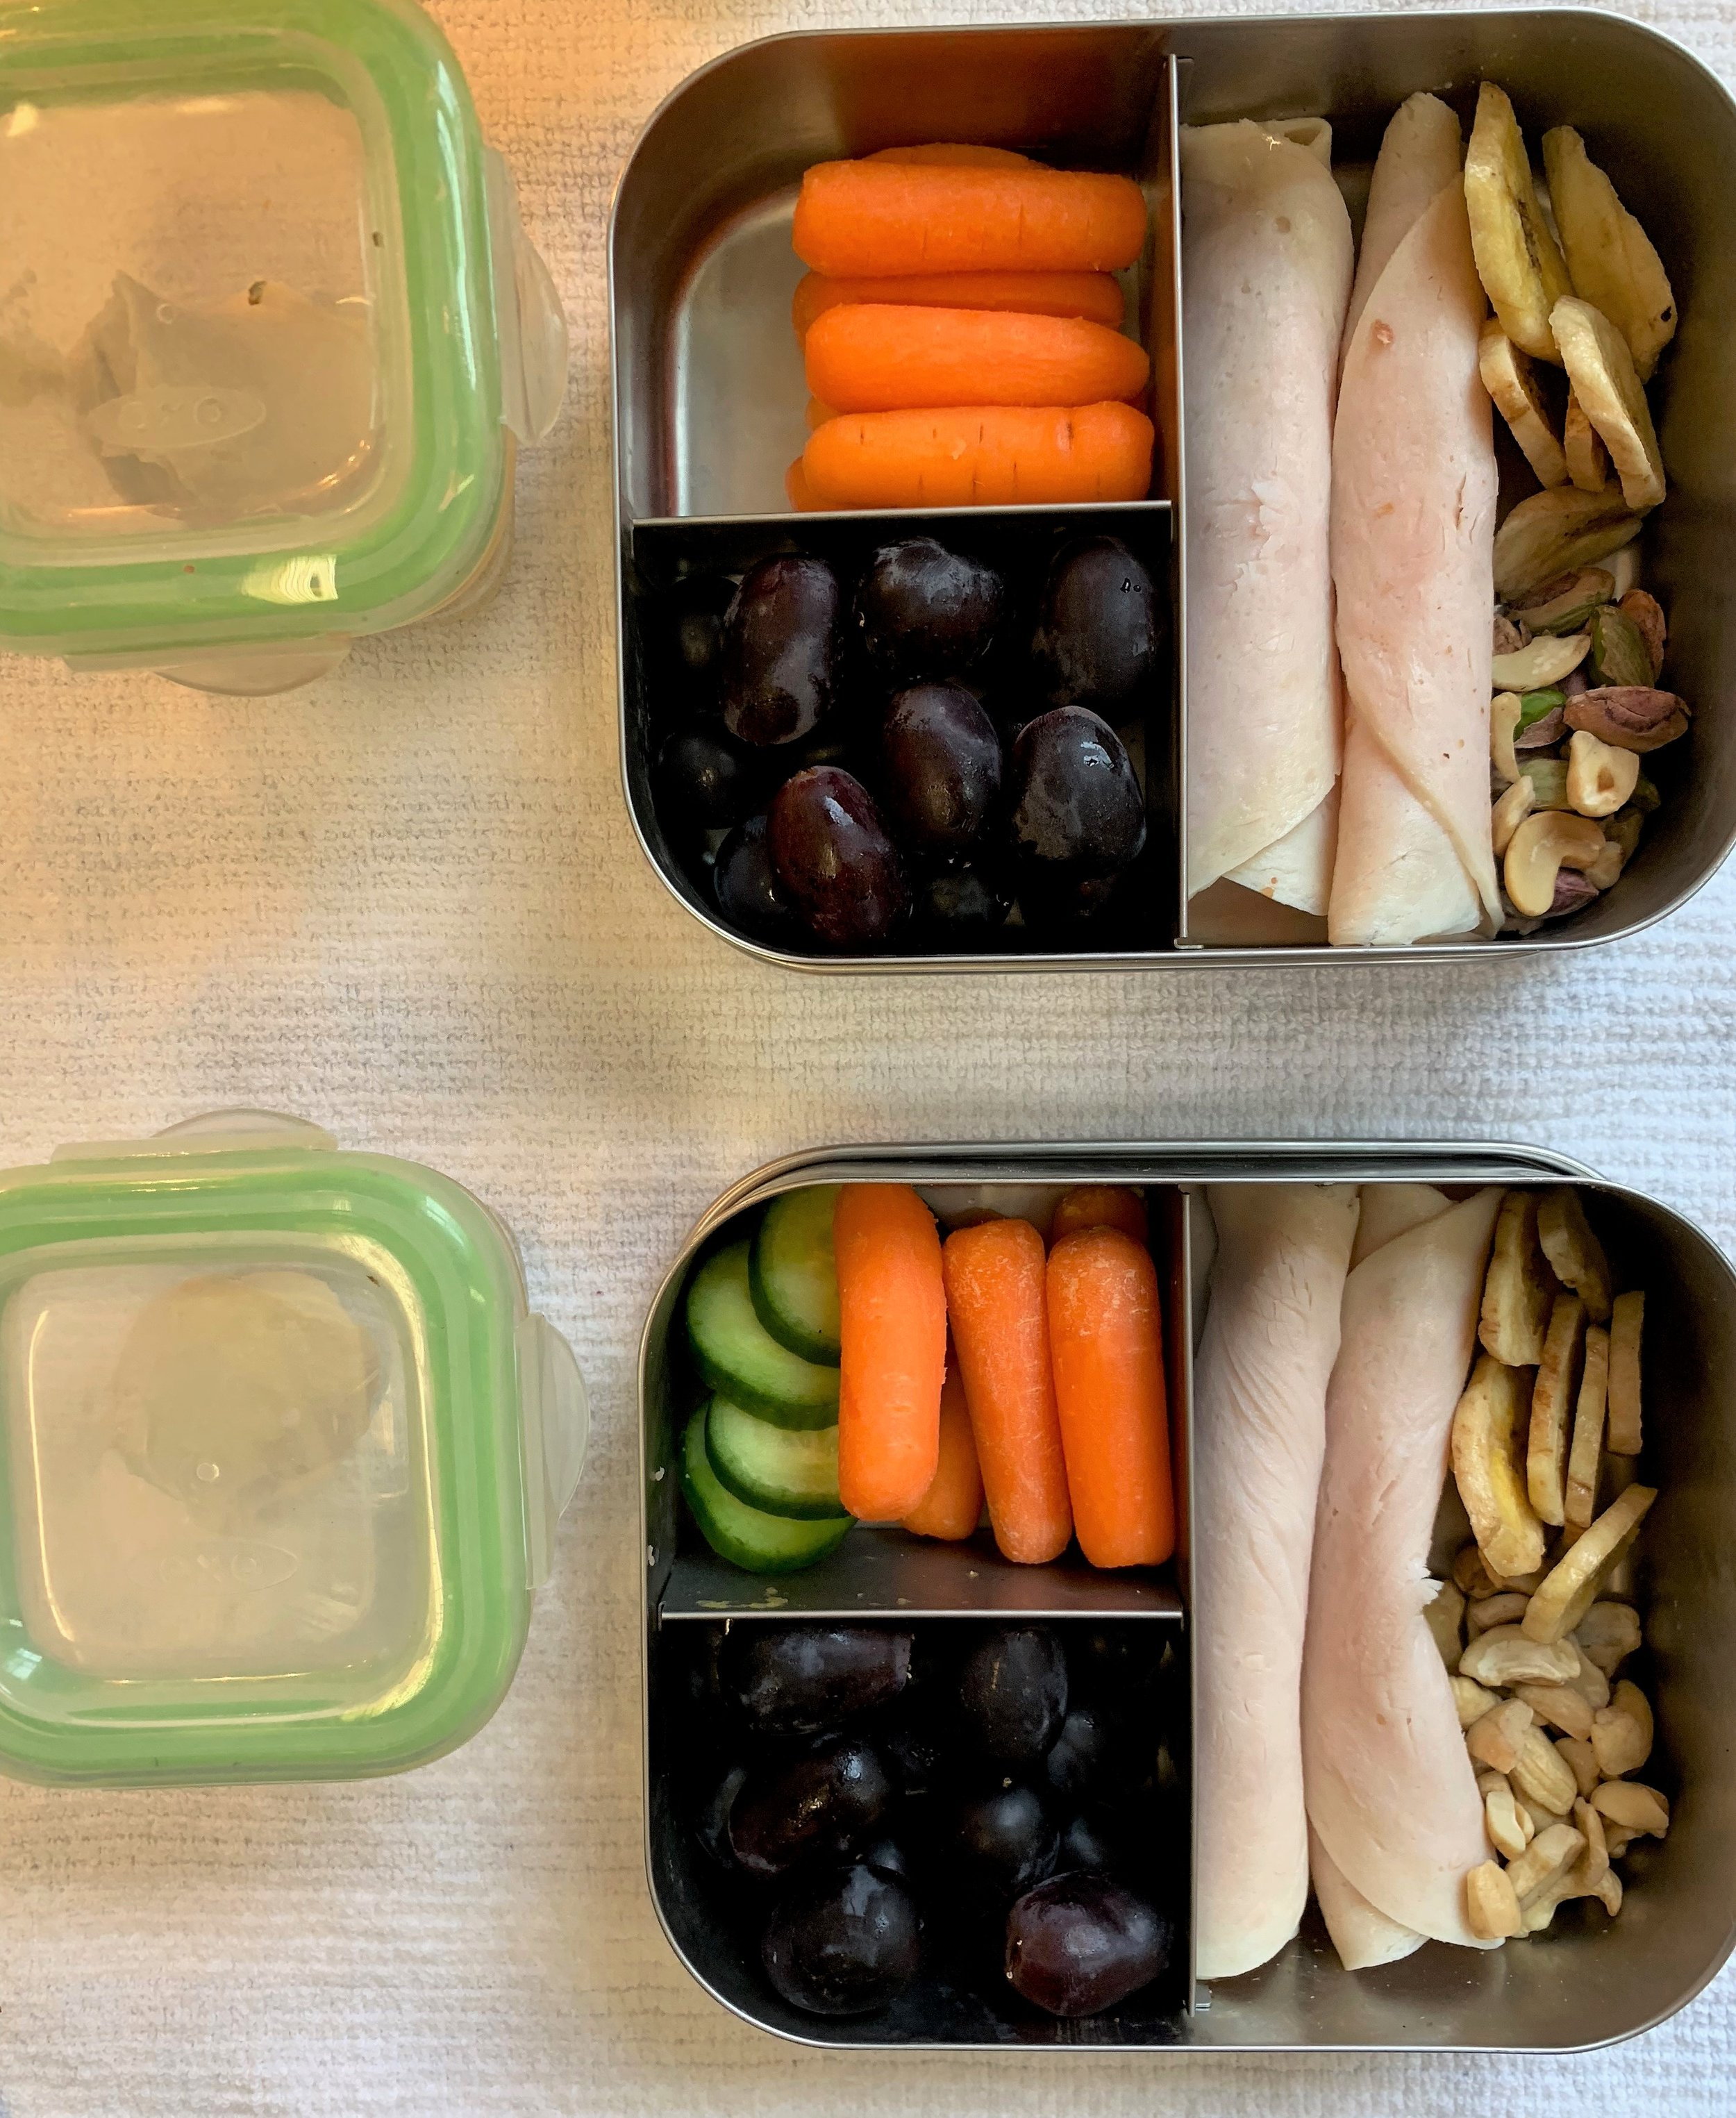 Main: Turkey, banana chips, cashews  Bottom left: grapes  Top left: cucumbers and carrots  Extra container: hummus